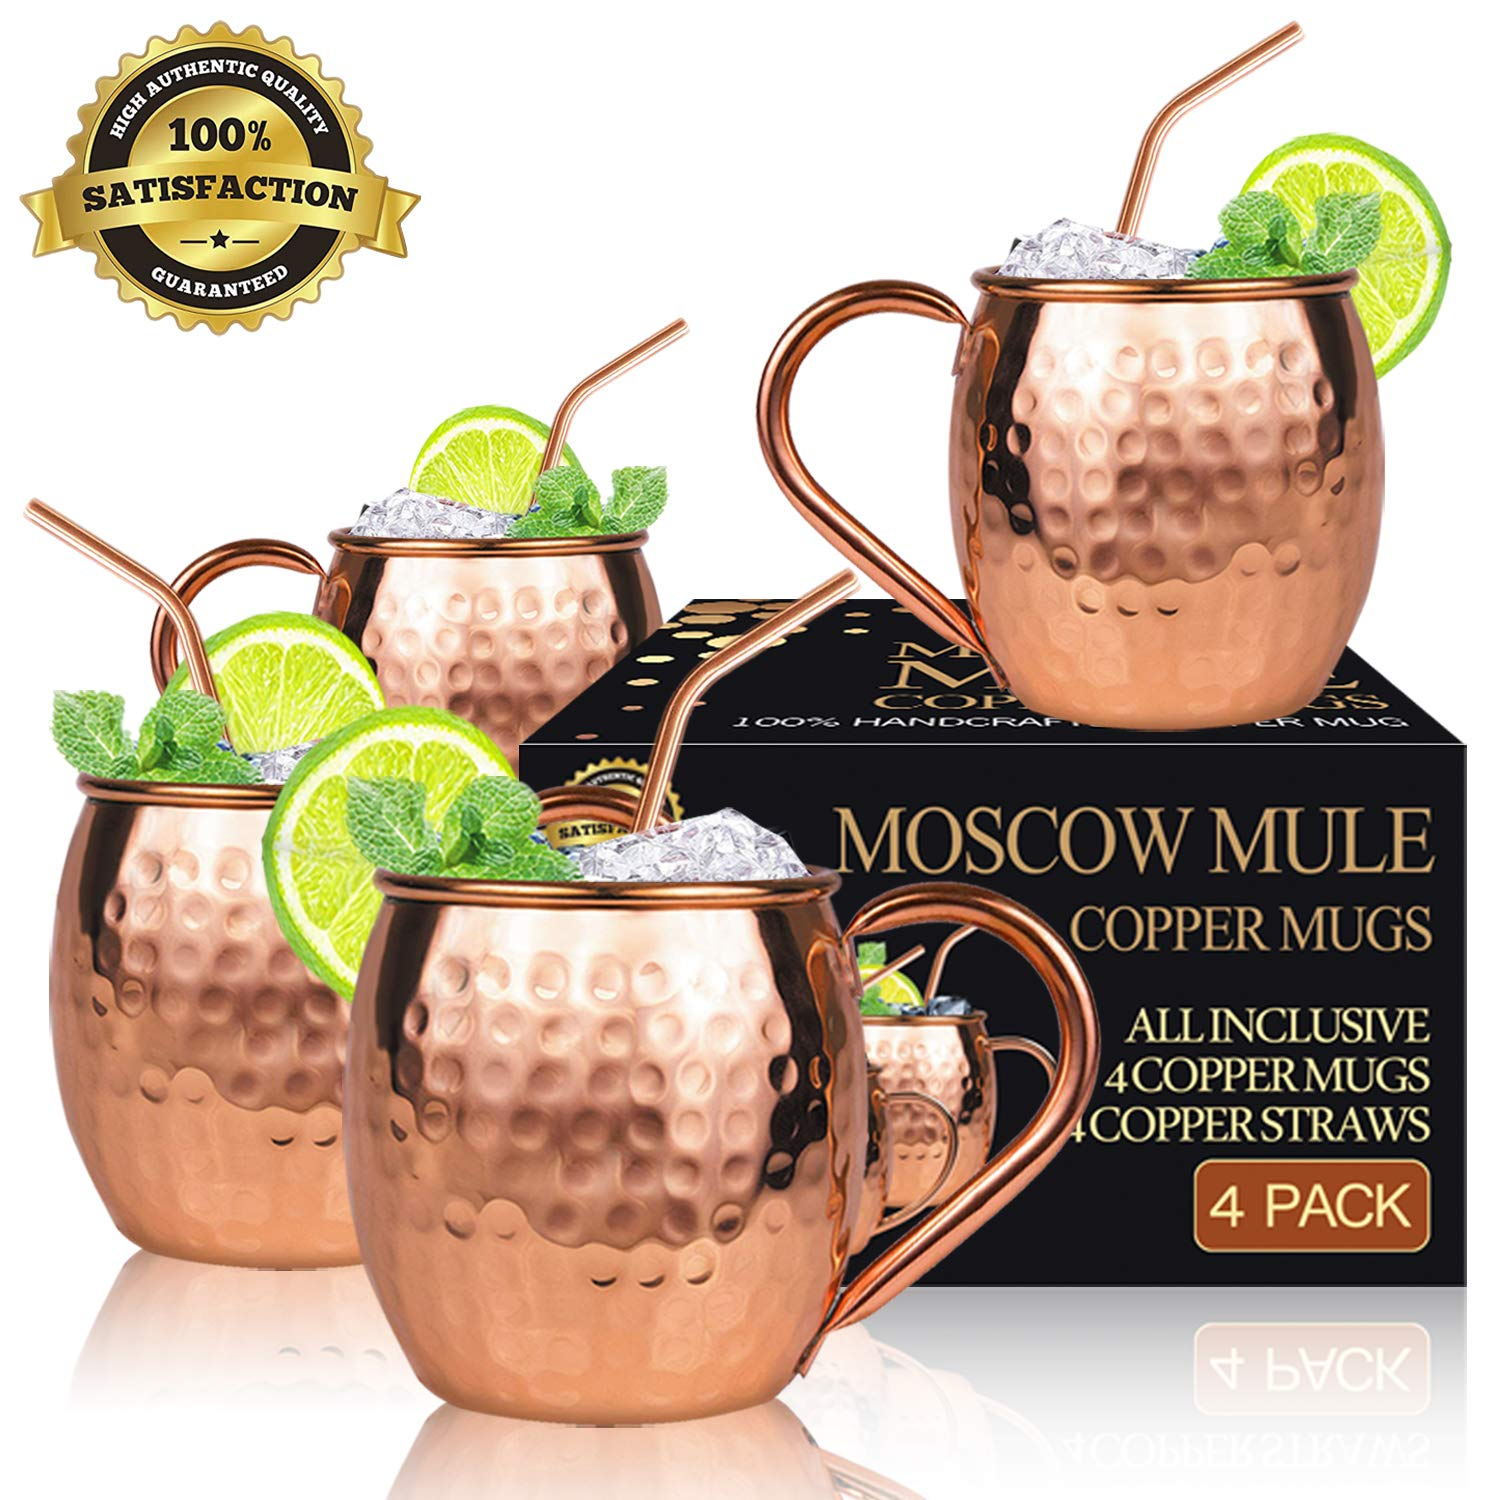 Crazestar Moscow Mule Copper Mugs 16 oz - Set of 4 - Gift Set with BONUS: 4 Highest Quality Cocktail Copper Straws - Food Safe Pure Solid Copper Mugs 100% Handcrafted by Crazestar